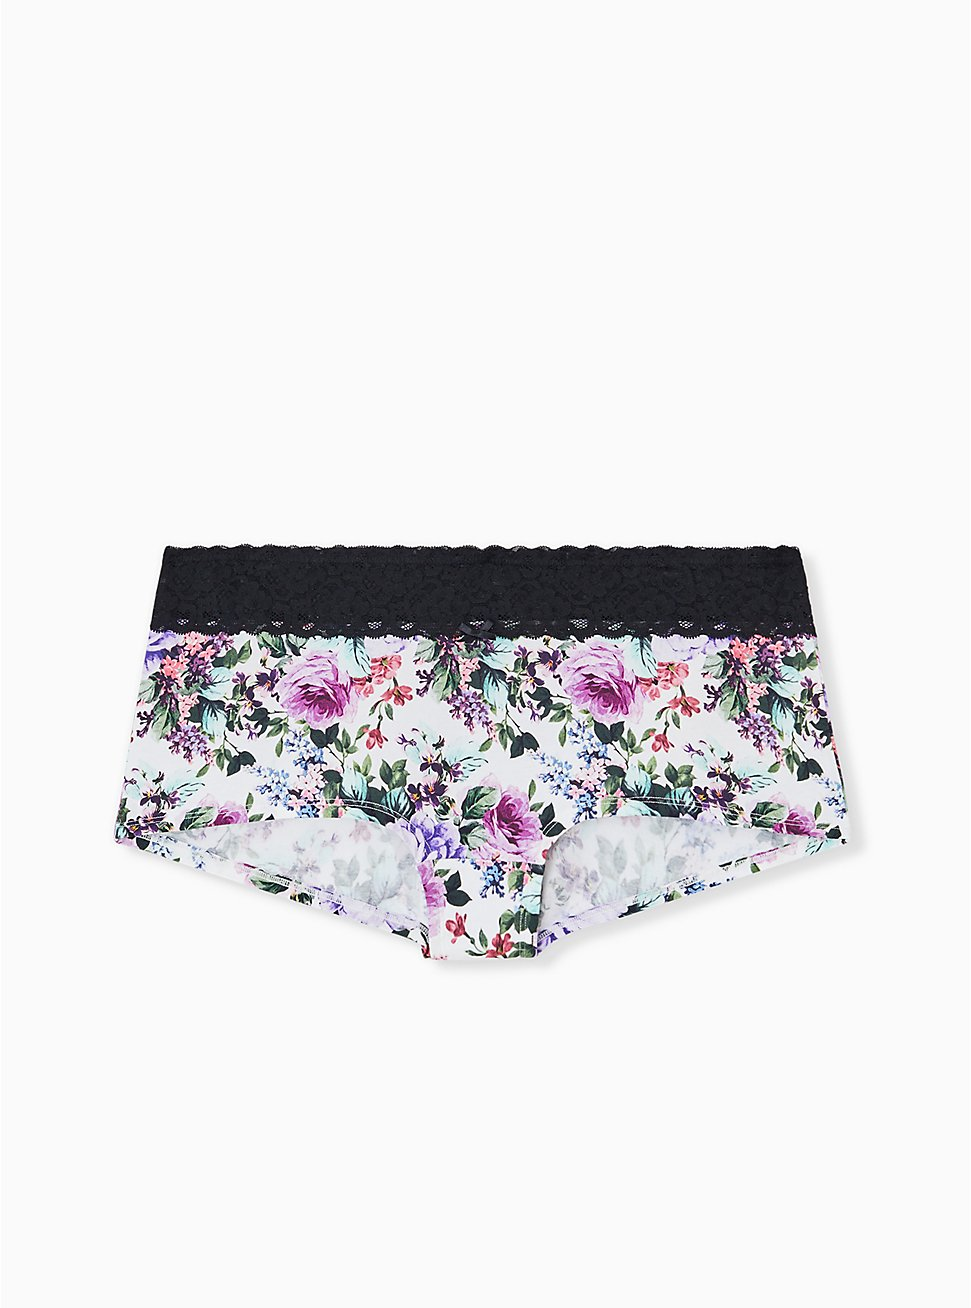 White Floral & Black Wide Lace Cotton Boyshort Panty, MULTI FLORAL BORDER- WHITE, hi-res